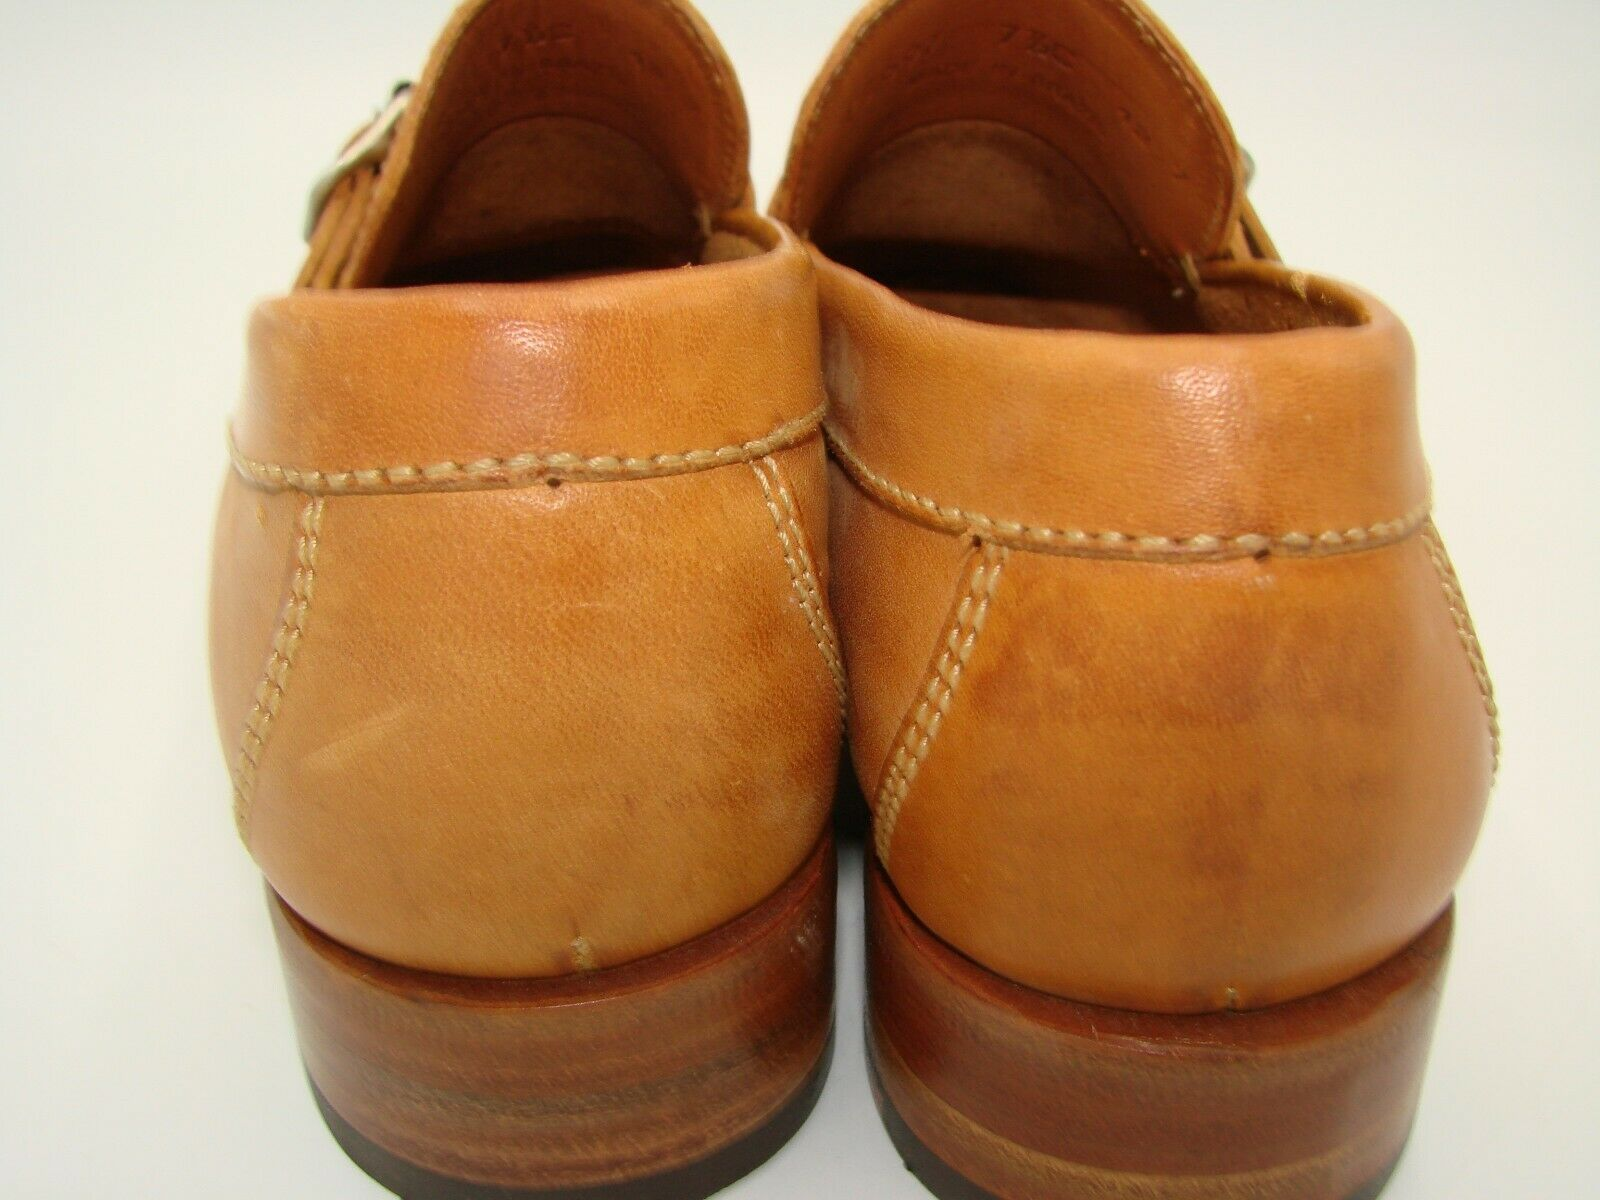 NWOB Women's Cole Haan Slip-on Tan Leather/Buckle Loafers, Mini stacked heel